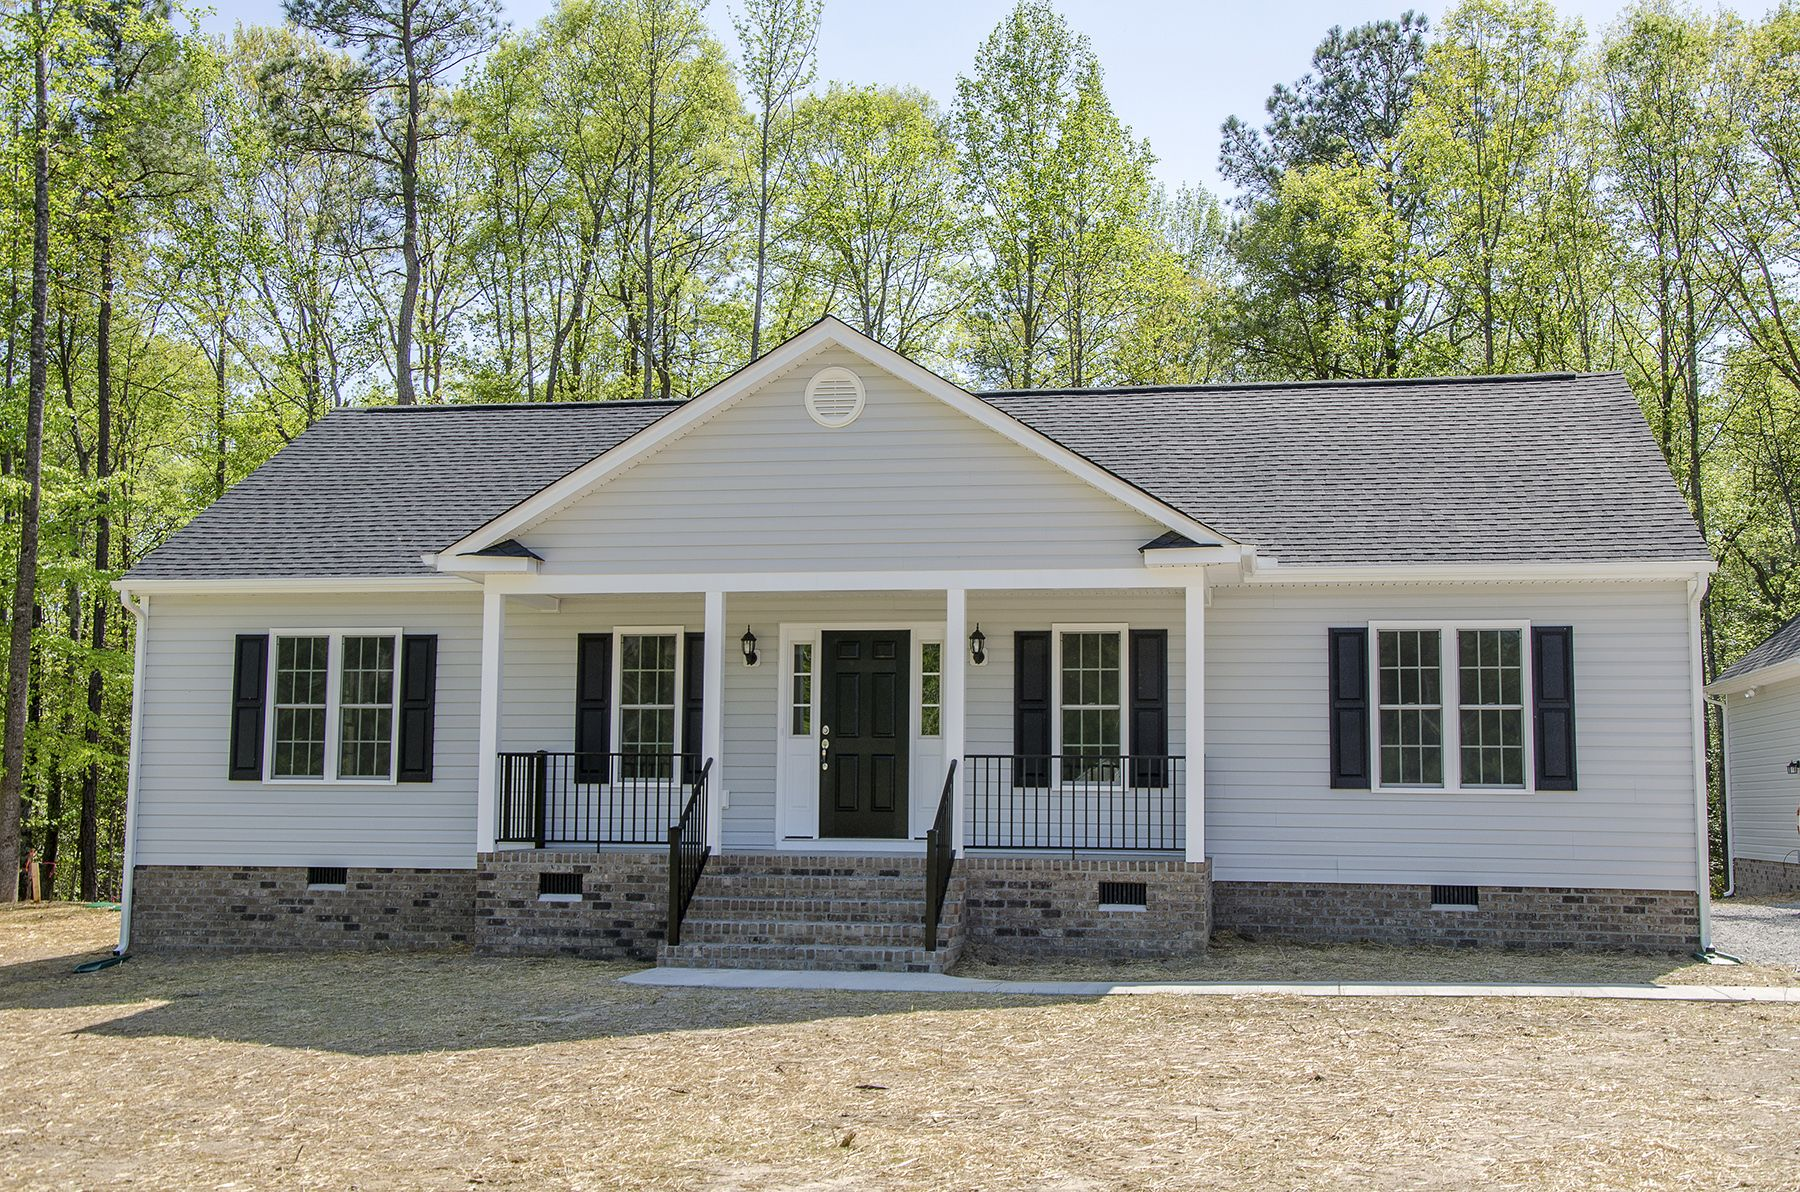 Beautiful Ranch Style Custom Home With A Front Porch And A Roof